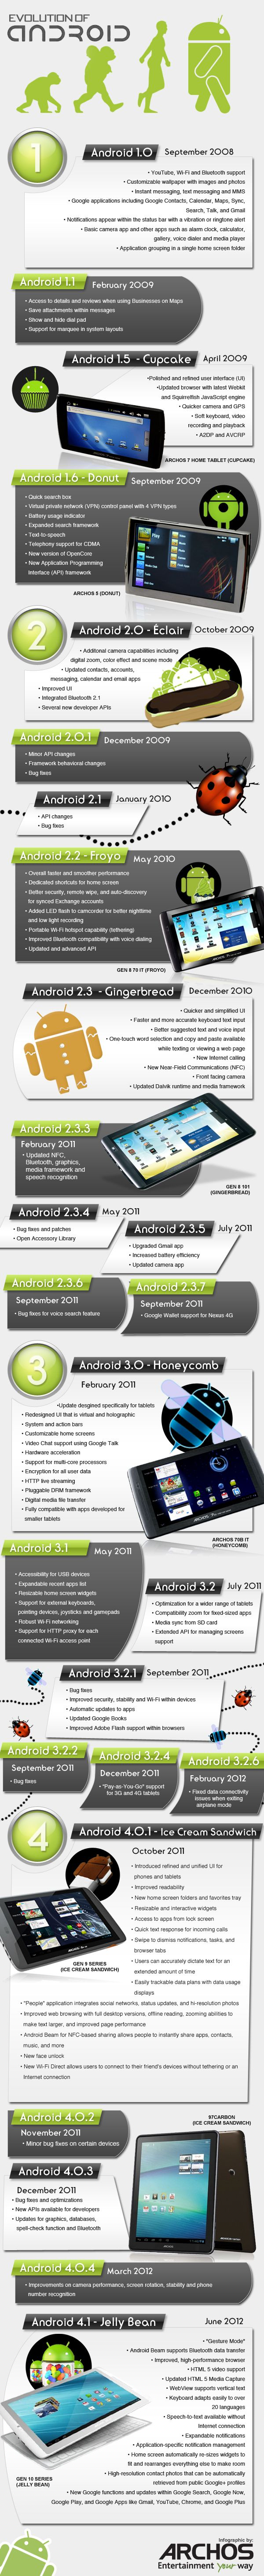 Evolution of Android #infographic